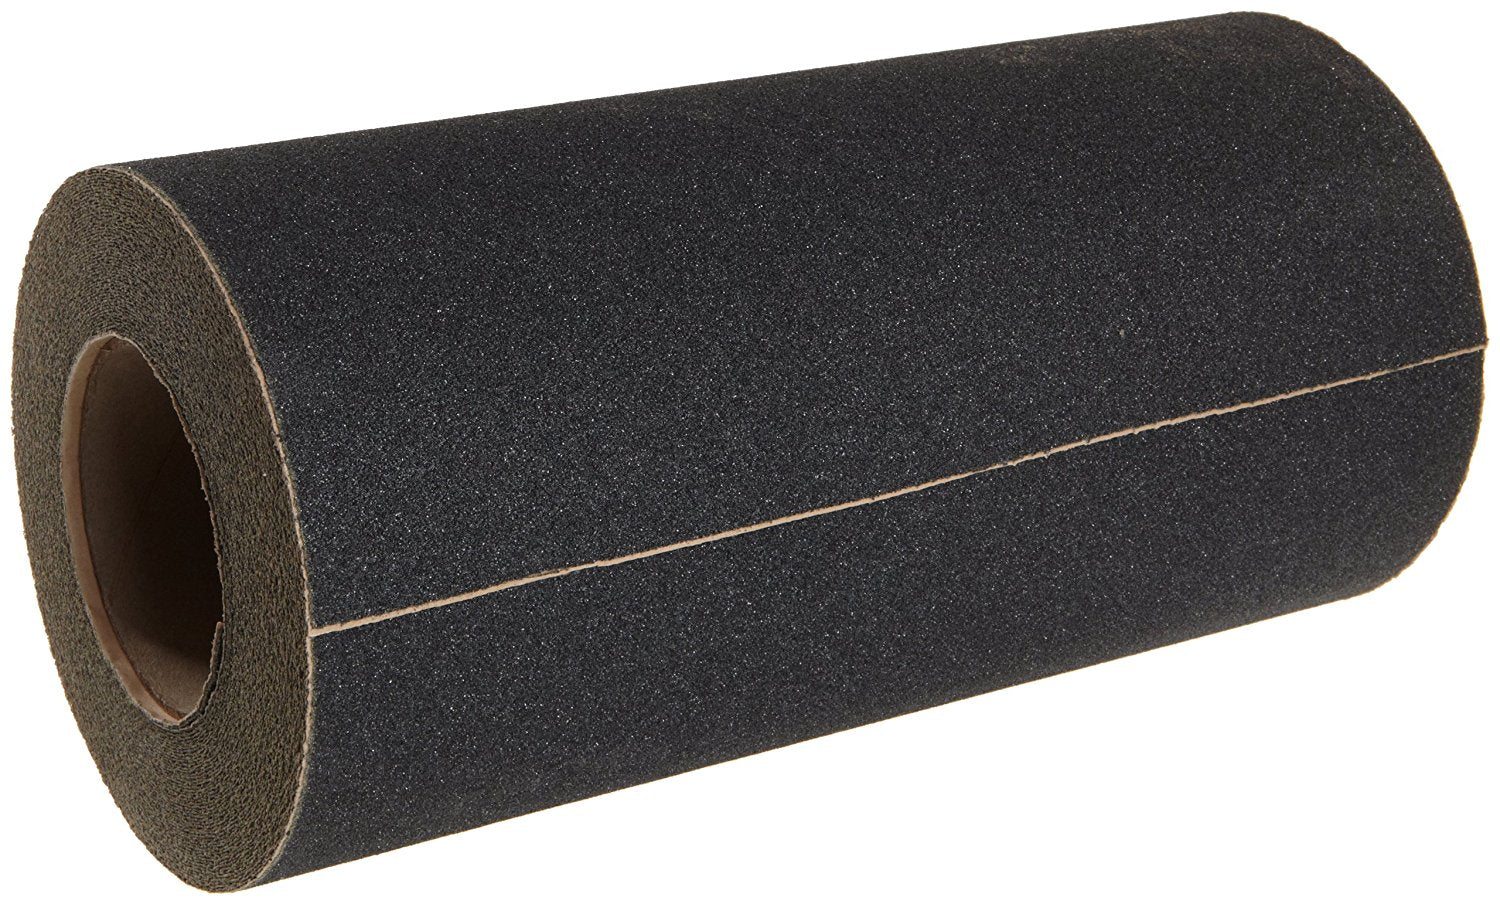 "12"" X 60' Roll BLACK Abrasive Tape - Case of 2"